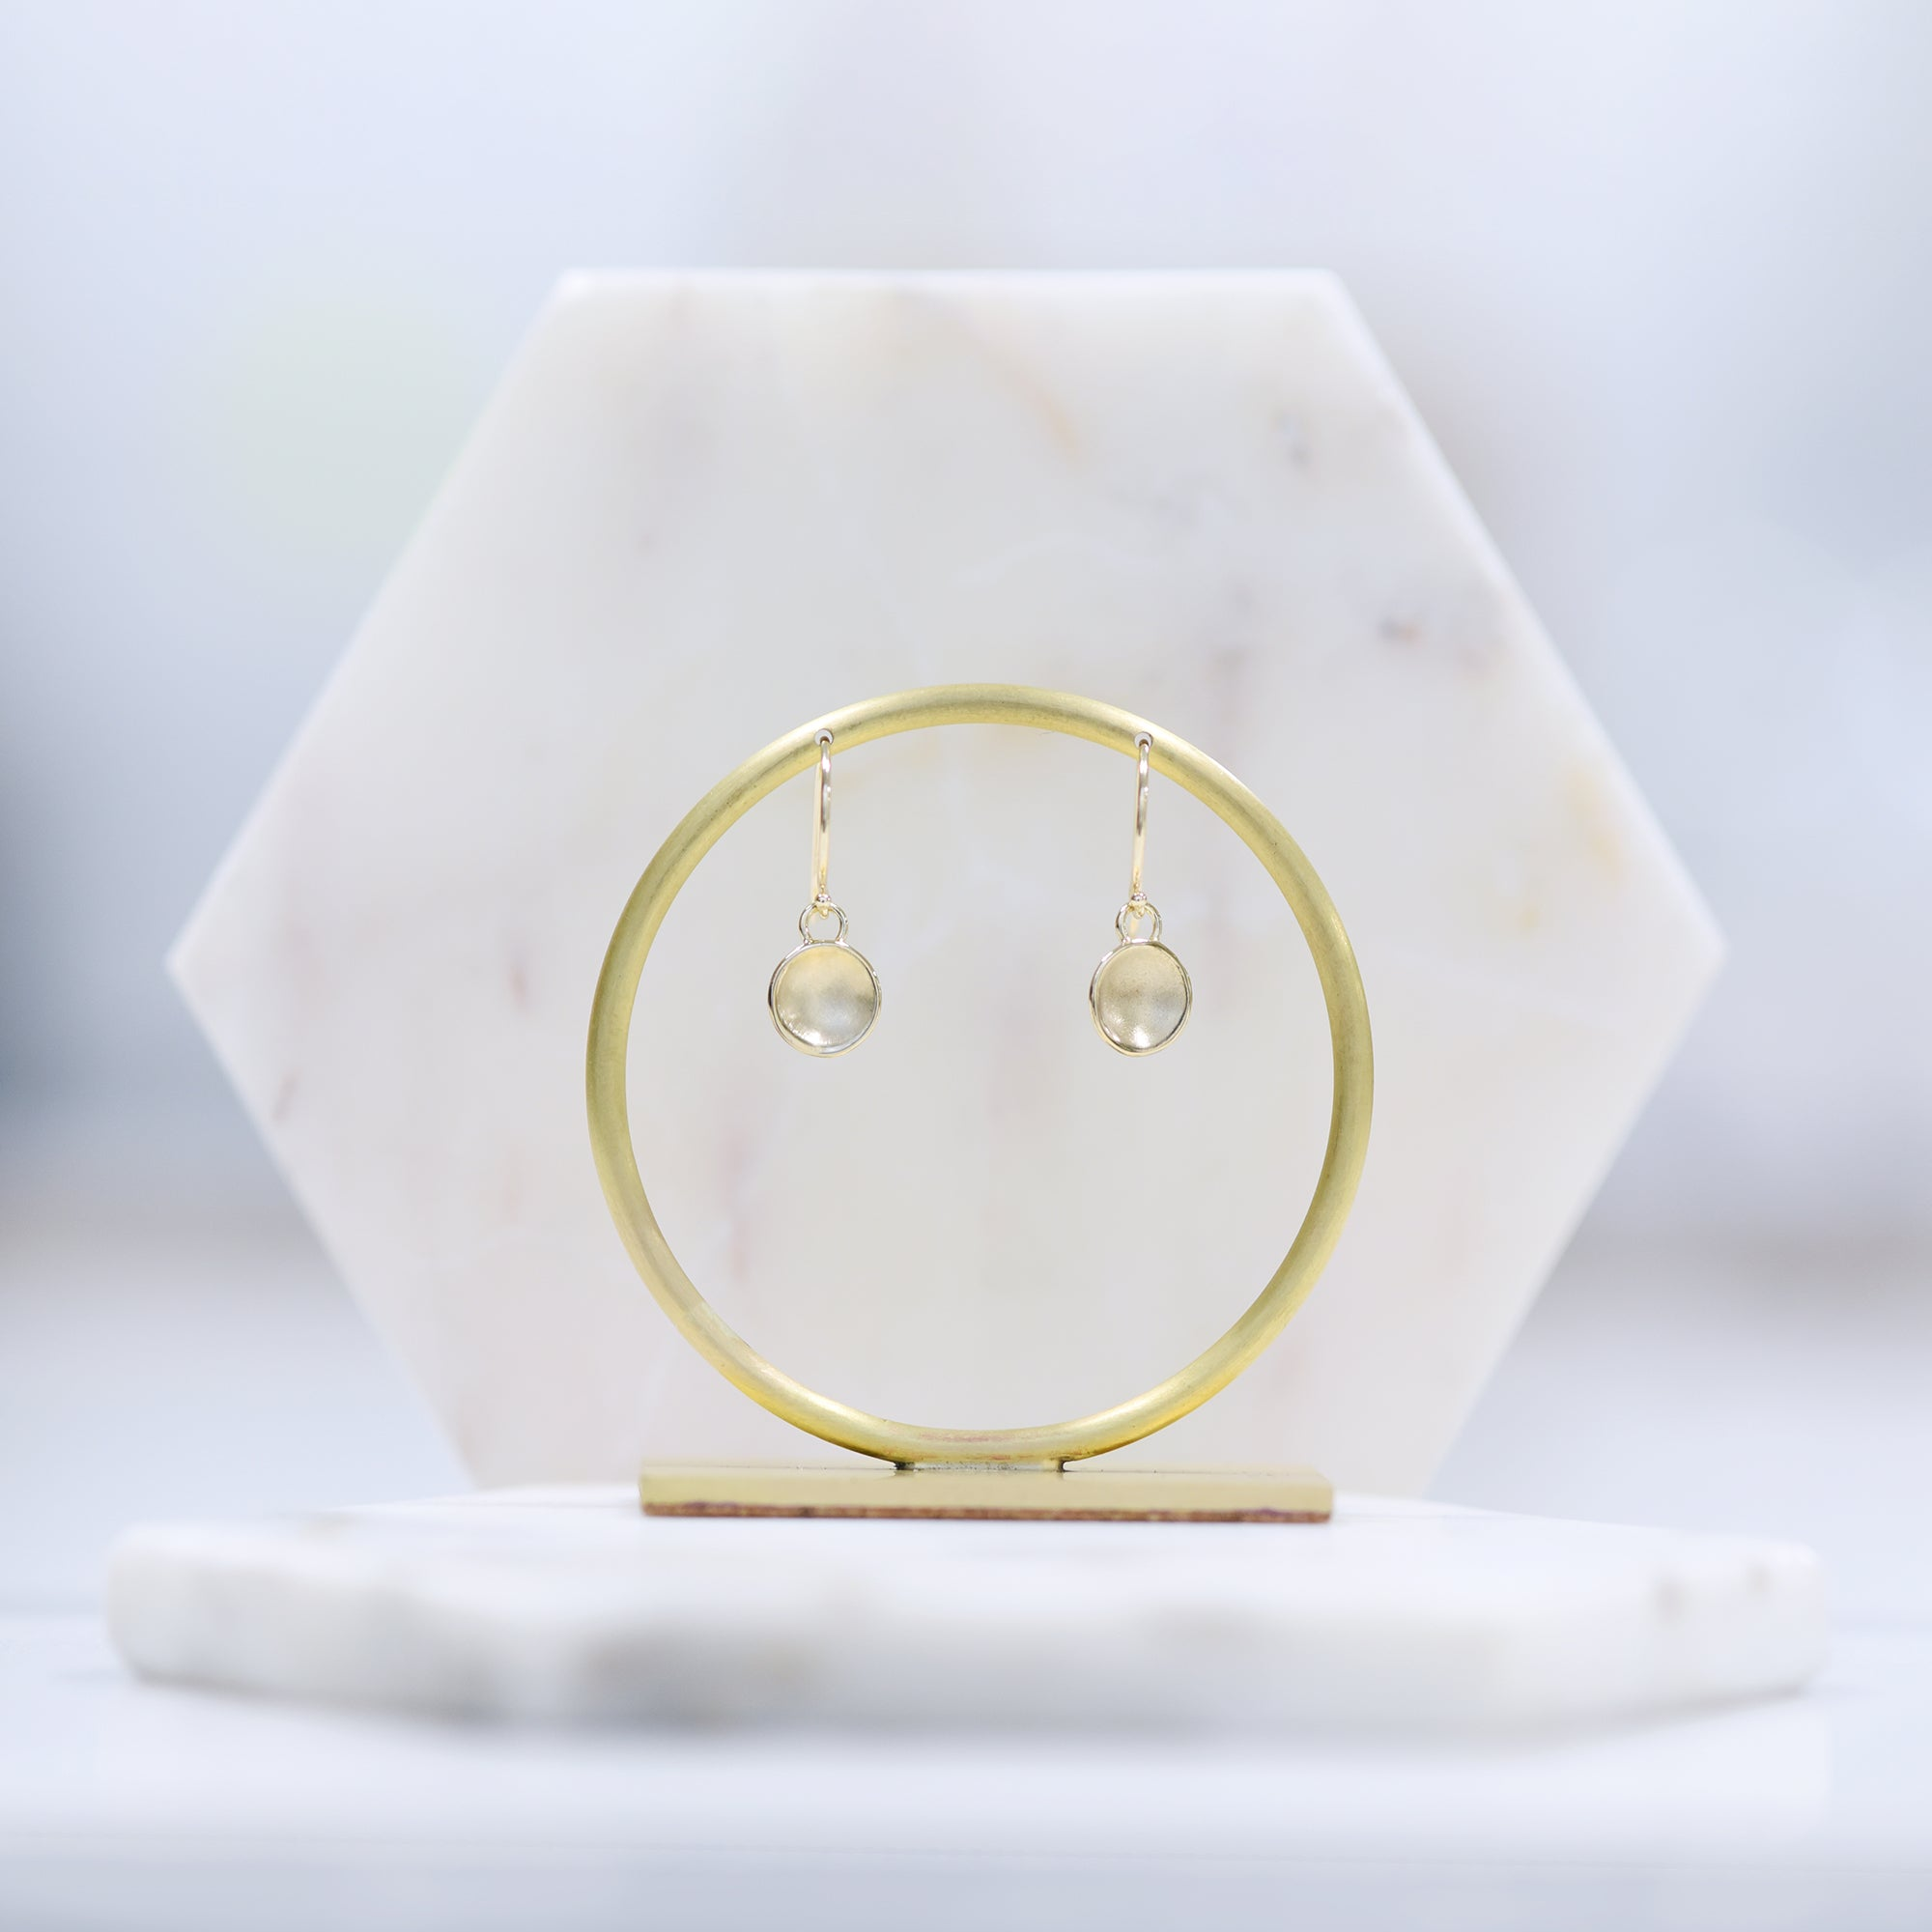 14K Yellow gold concave circle dangle earrings by Valerie Madison Jewelry